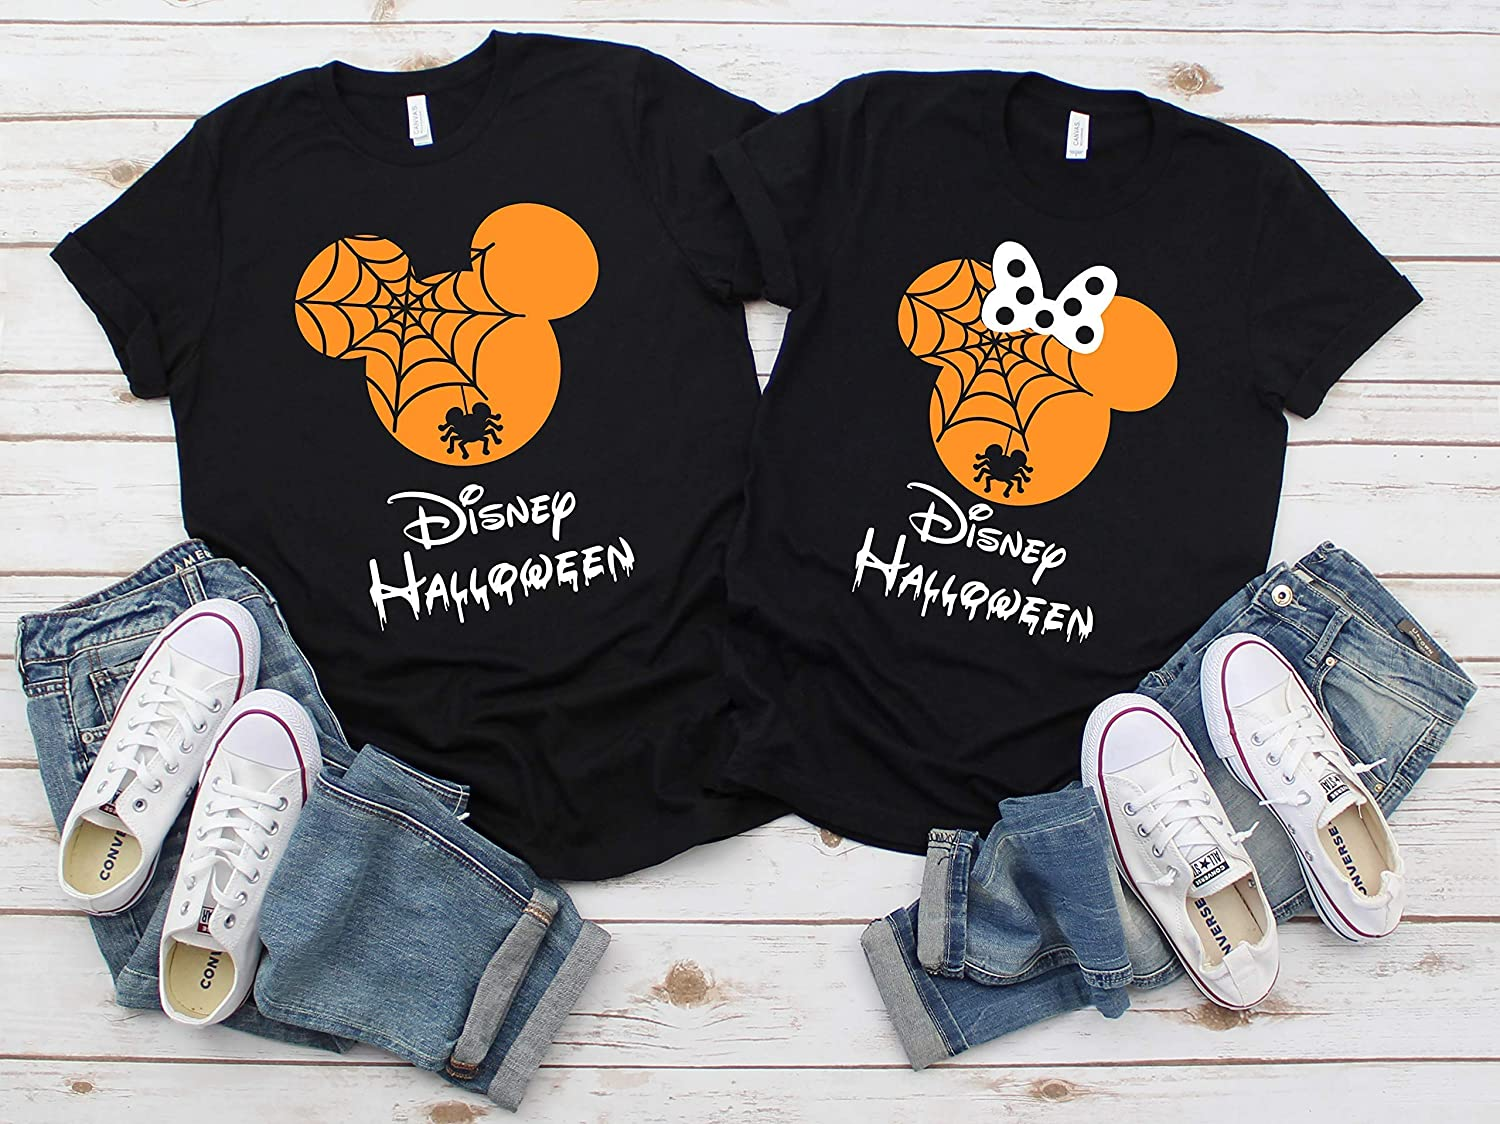 Disney Halloween T Shirts.Disney Halloween T Shirts Matching Vacation Apparel Shirts For Family Men Women Boys Girls Baby Spiderweb Mickey Minnie Ears Orange Black